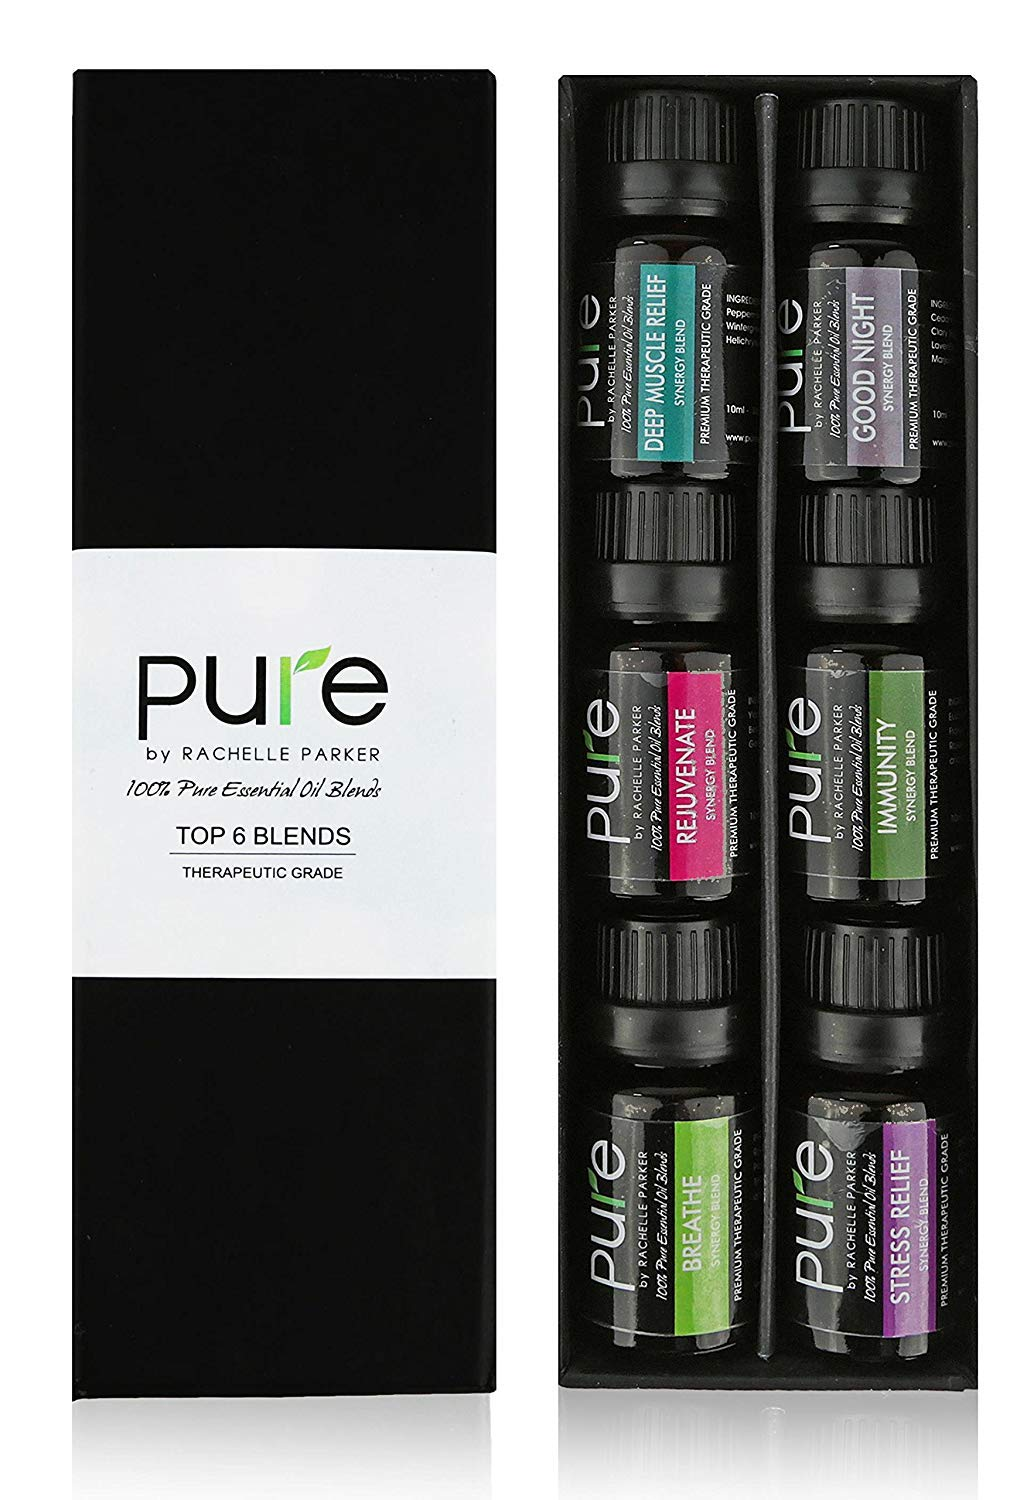 PURE Essential Oil Blends.Gift pack 6 Synergy Blend Set. Synergy Essential Oil Blend Beginner Starter Set Includes Good Night, Muscle Relief,Rejuvenate, Immunity, Breath & Stress Relief Oil Blends...